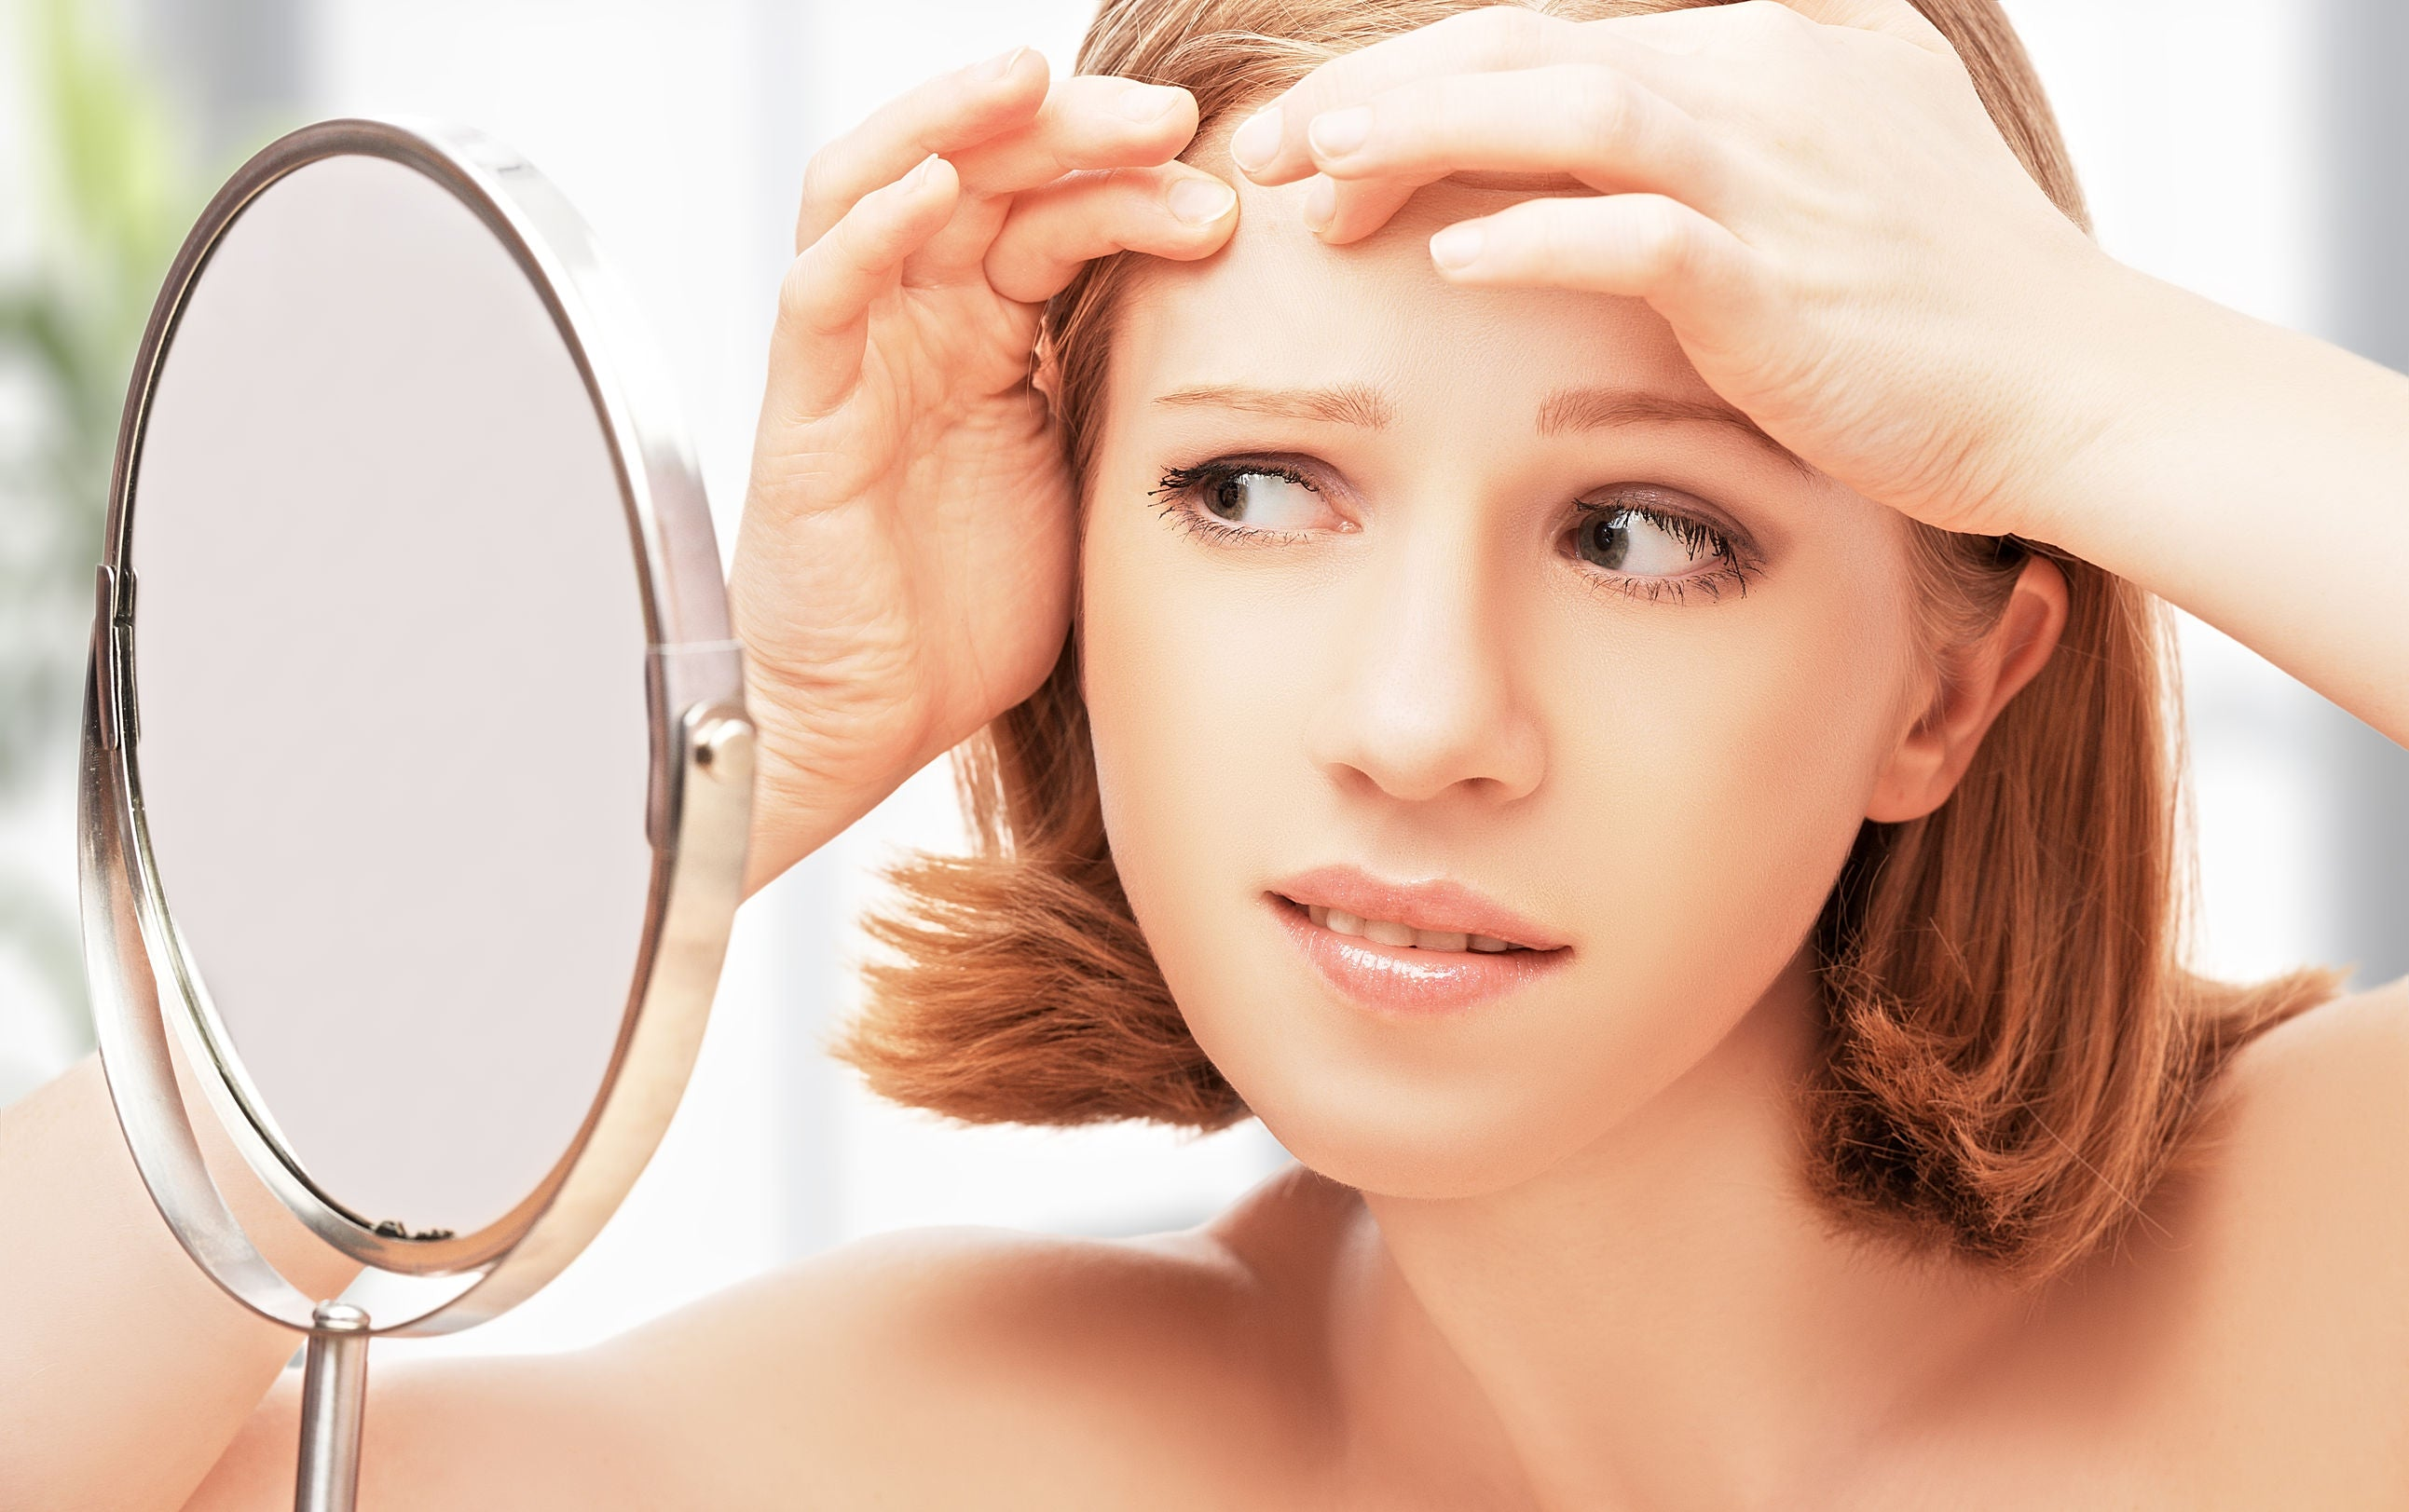 Acne Treatment & Acne Medications Explained - Bioclarity – BioClarity